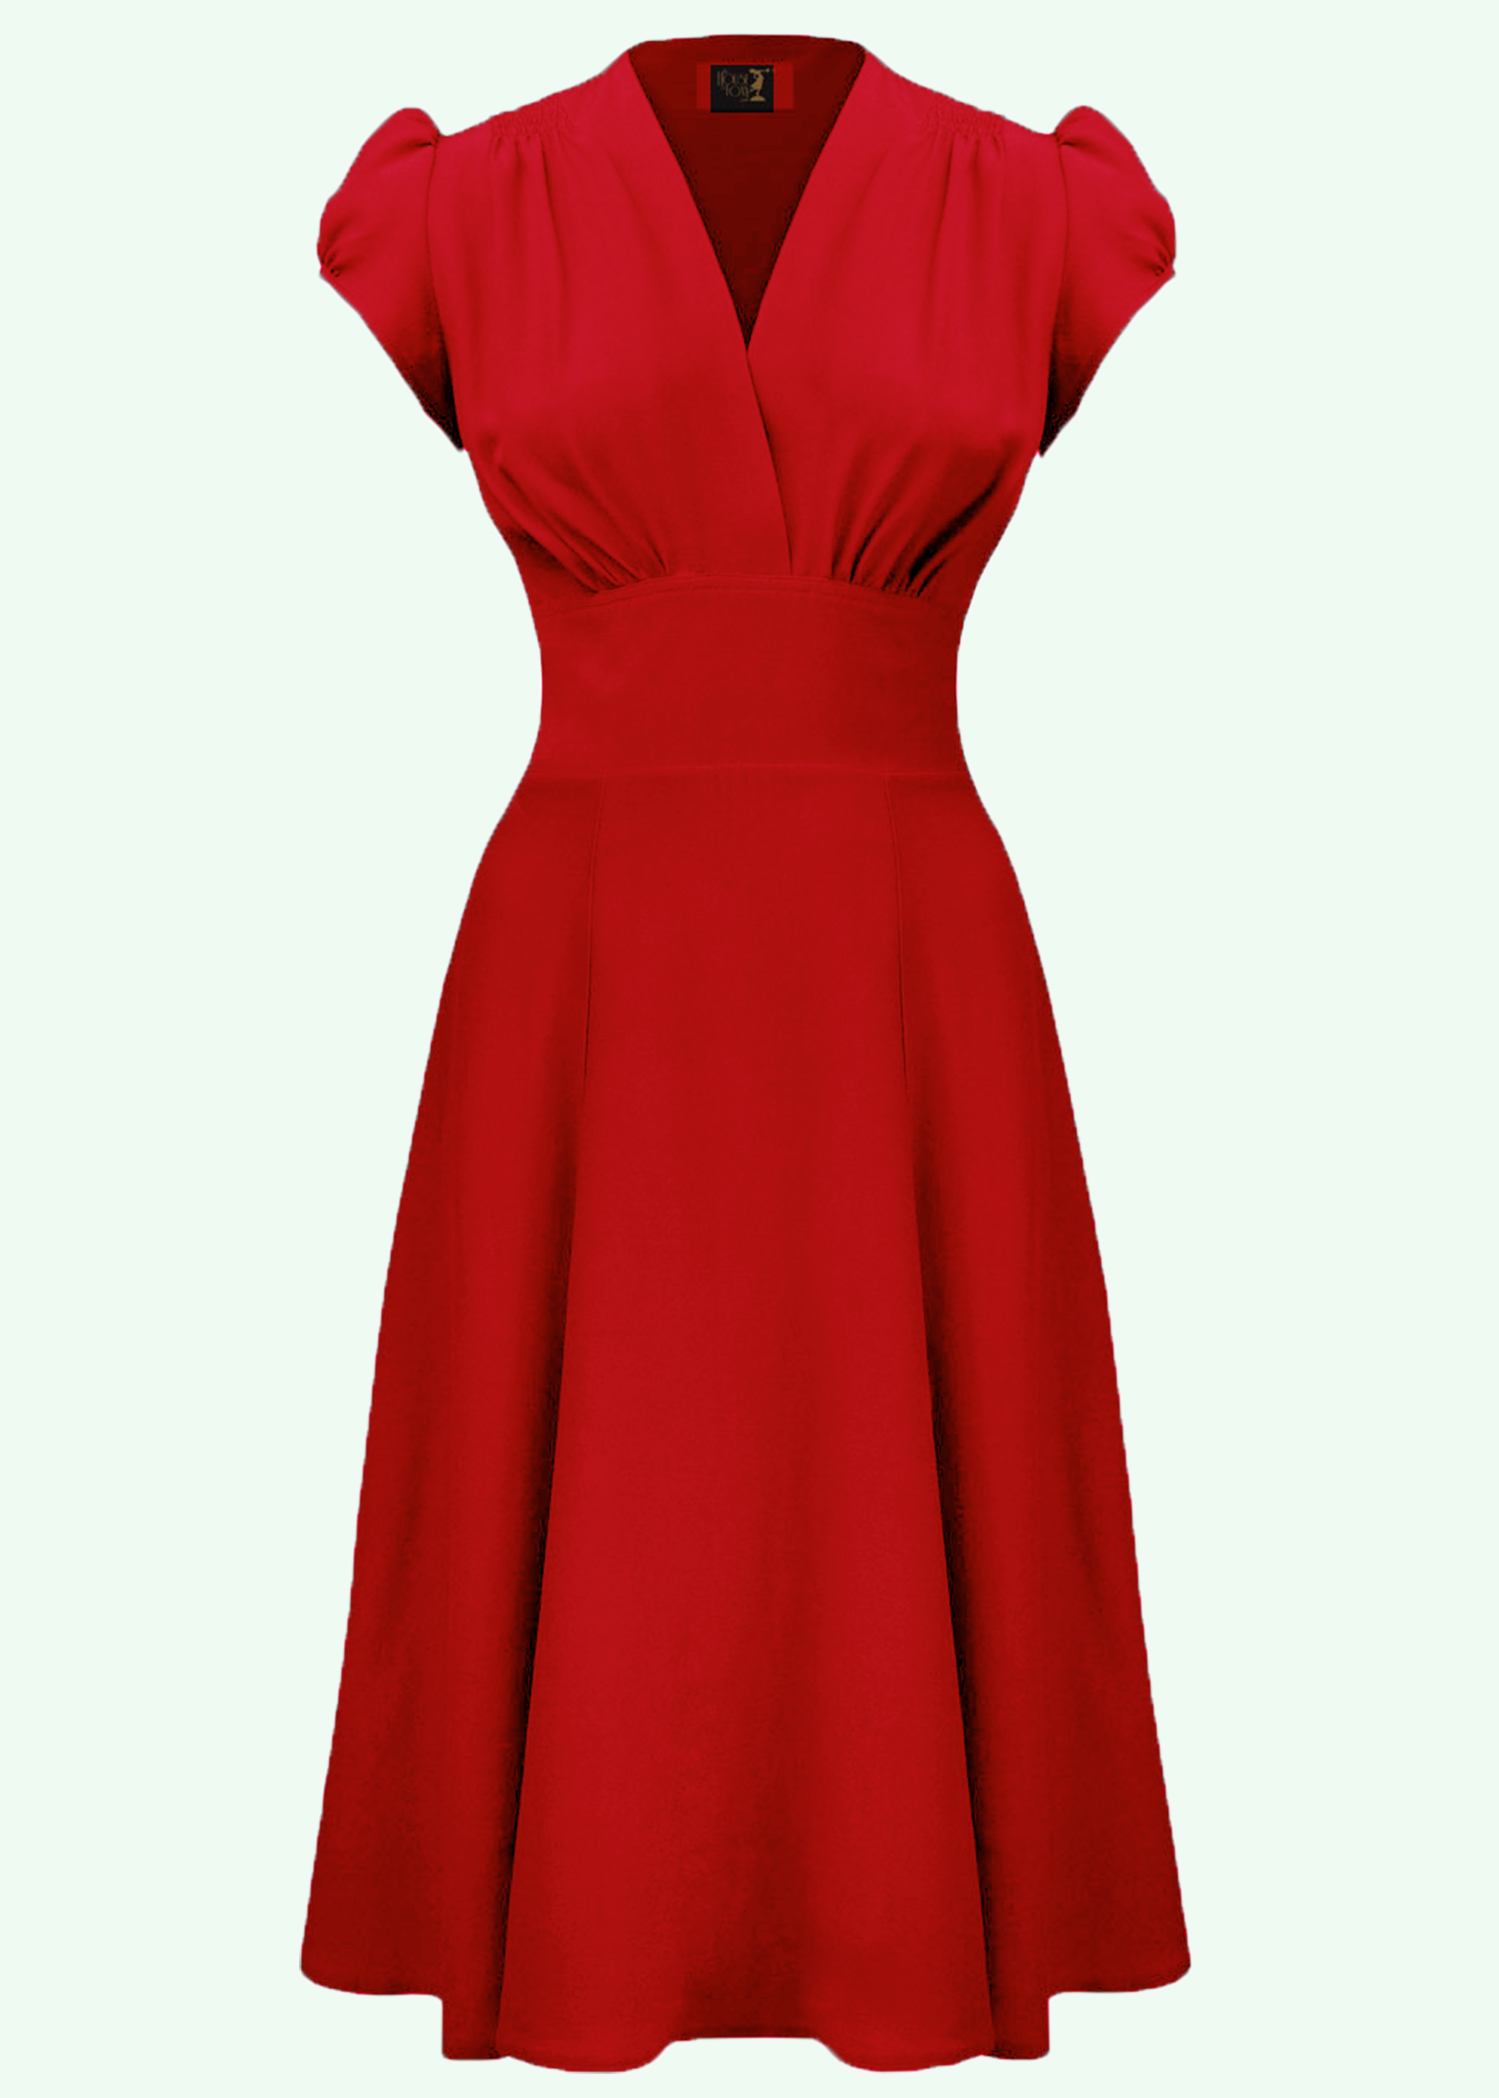 Ava 1940s dress from The House Of Foxy in red